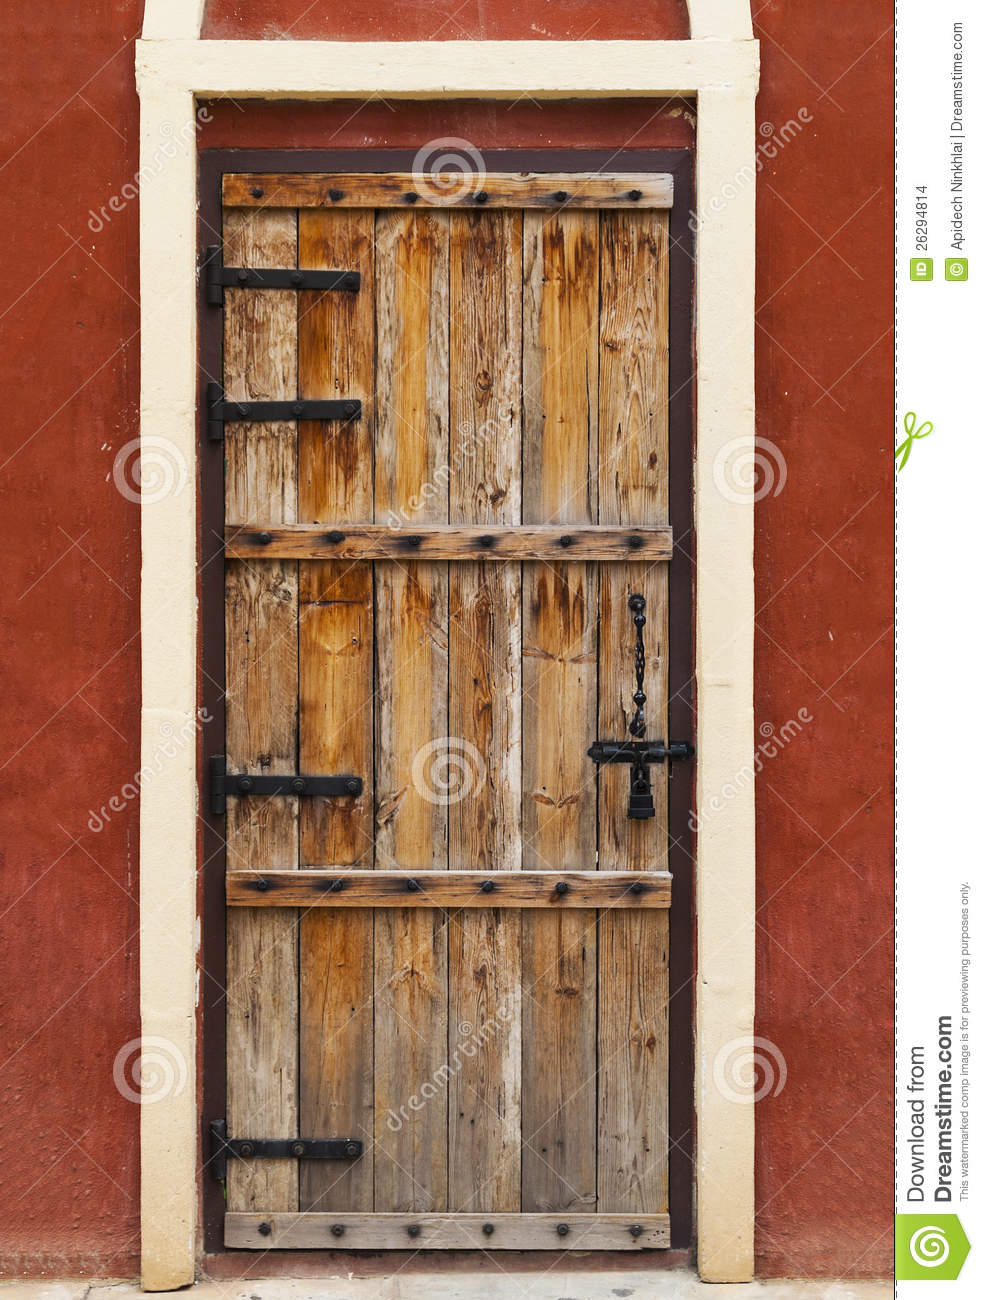 Images of Wooden Doors Vintage - Woonv.com - Handle idea